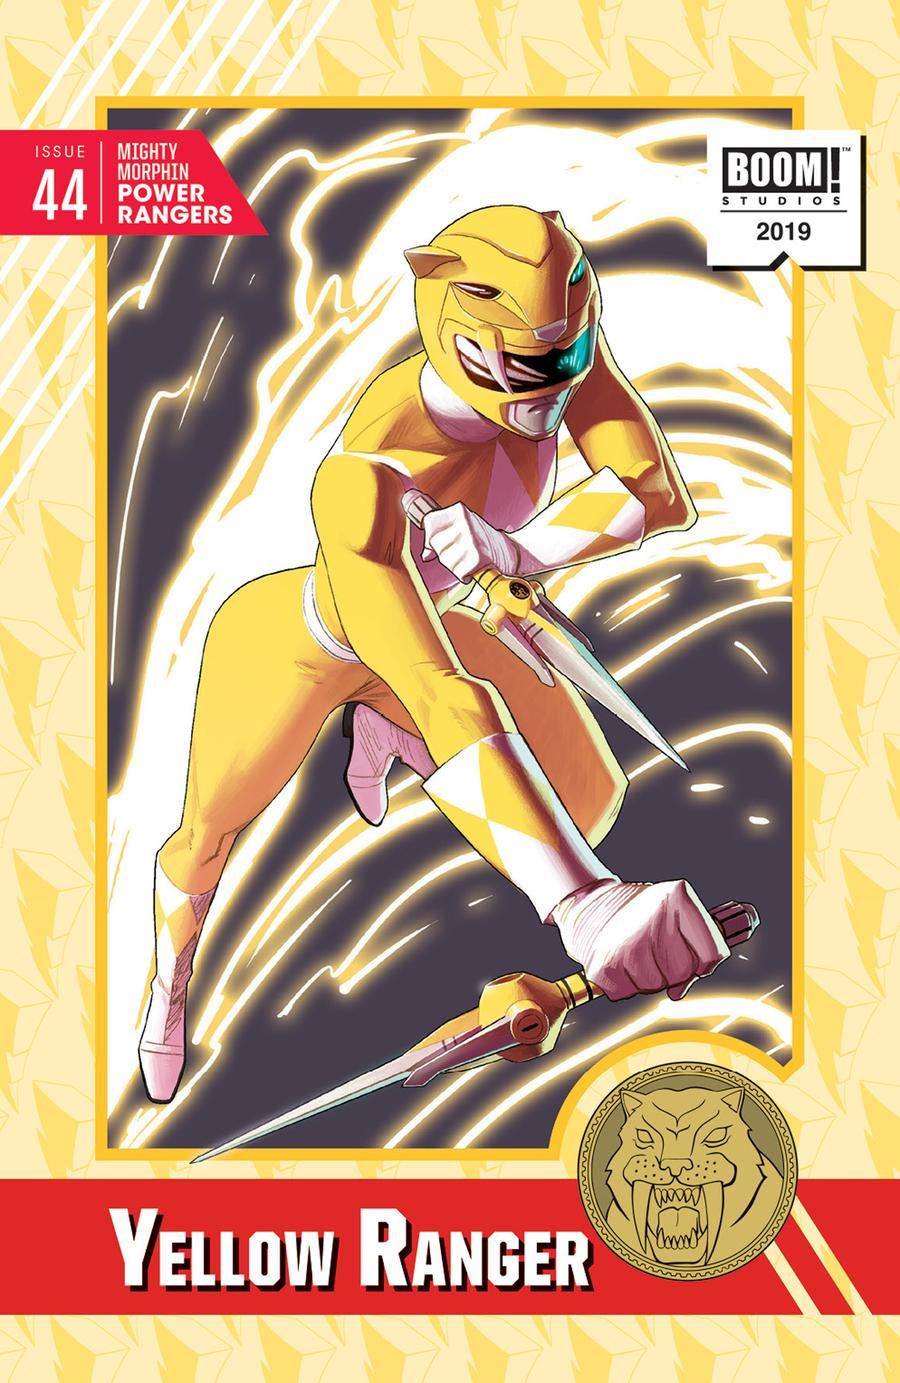 Mighty Morphin Power Rangers (BOOM Studios) #44 Cover D Incentive Kris Anka Variant Cover